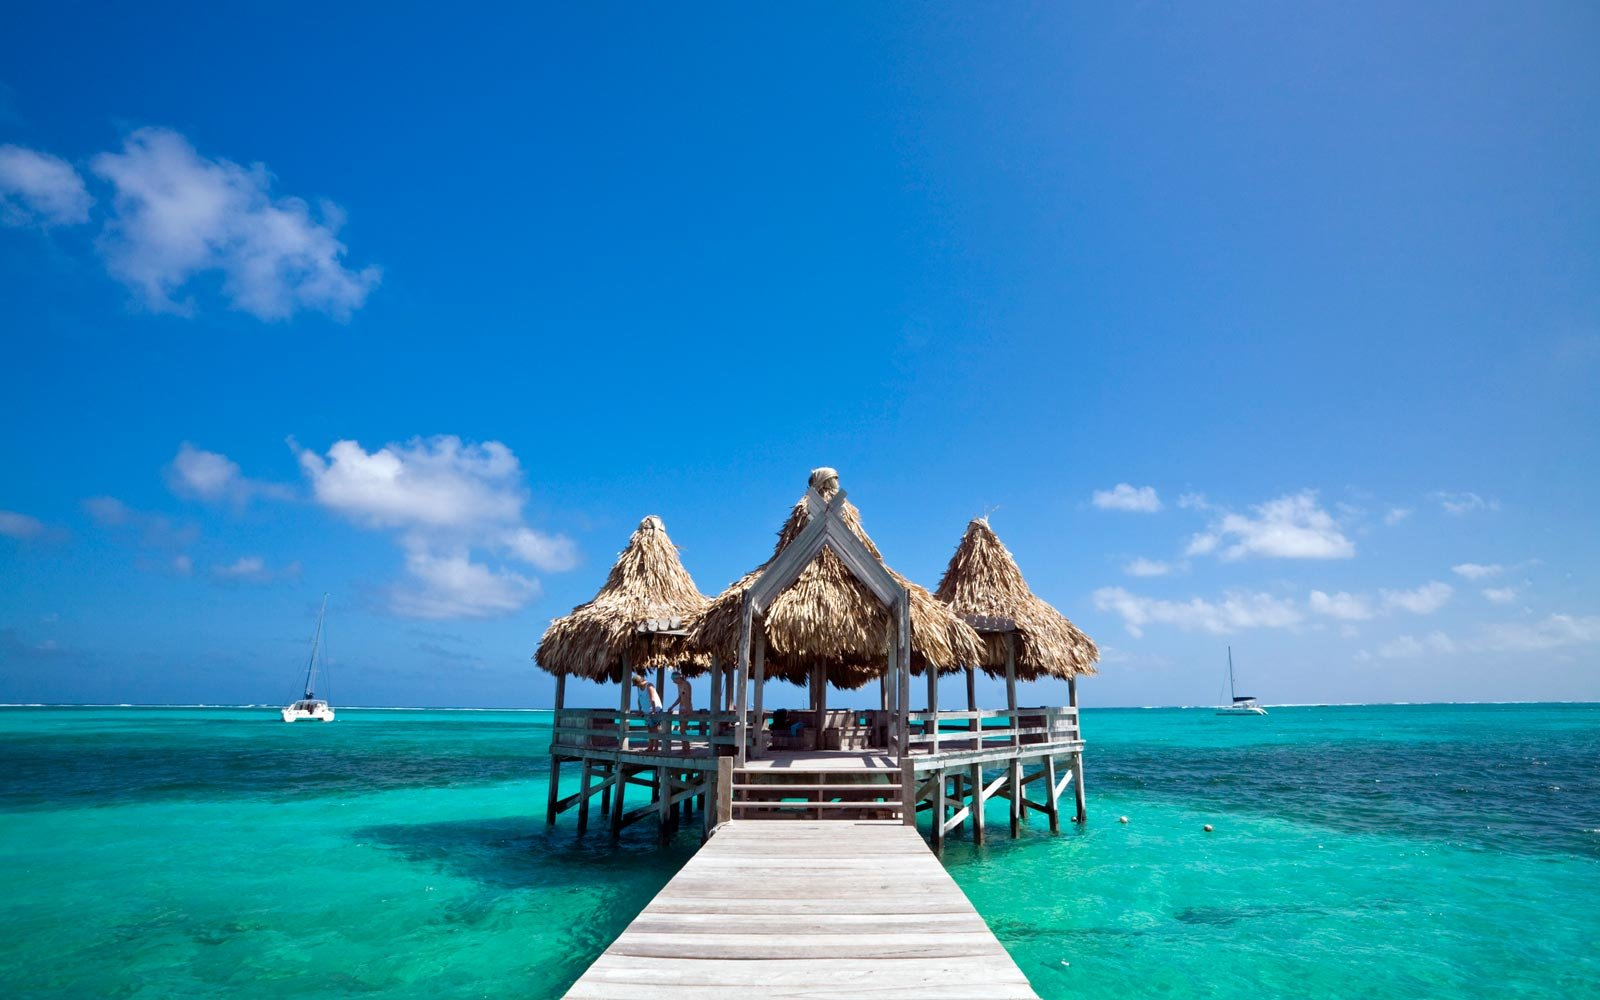 13 places to see the clearest blue water in the world | travel + leisure